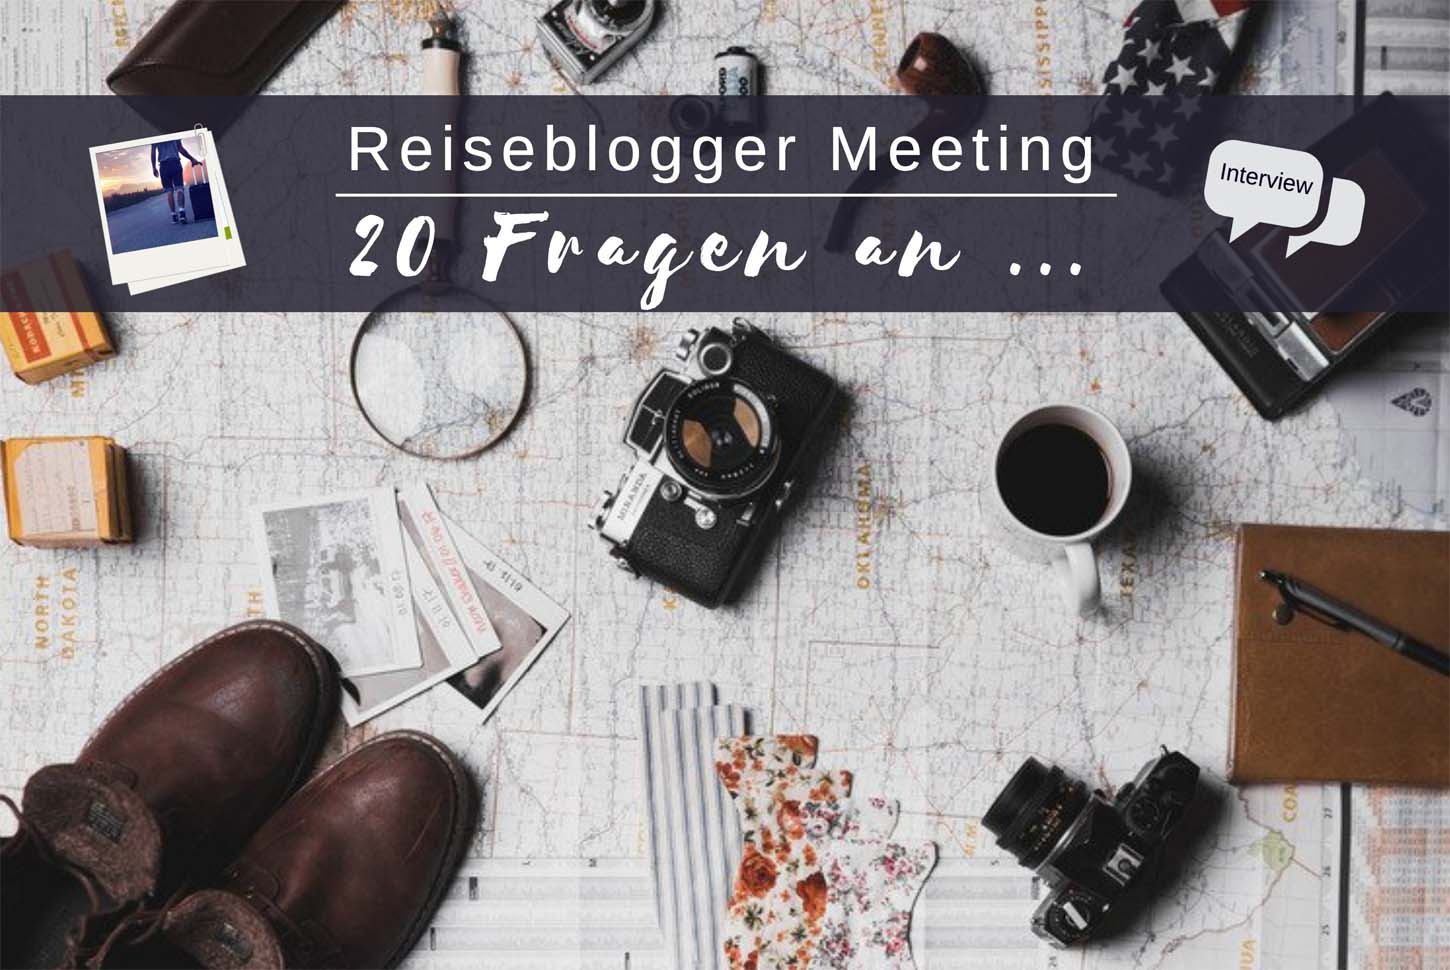 reiseblogger meeting